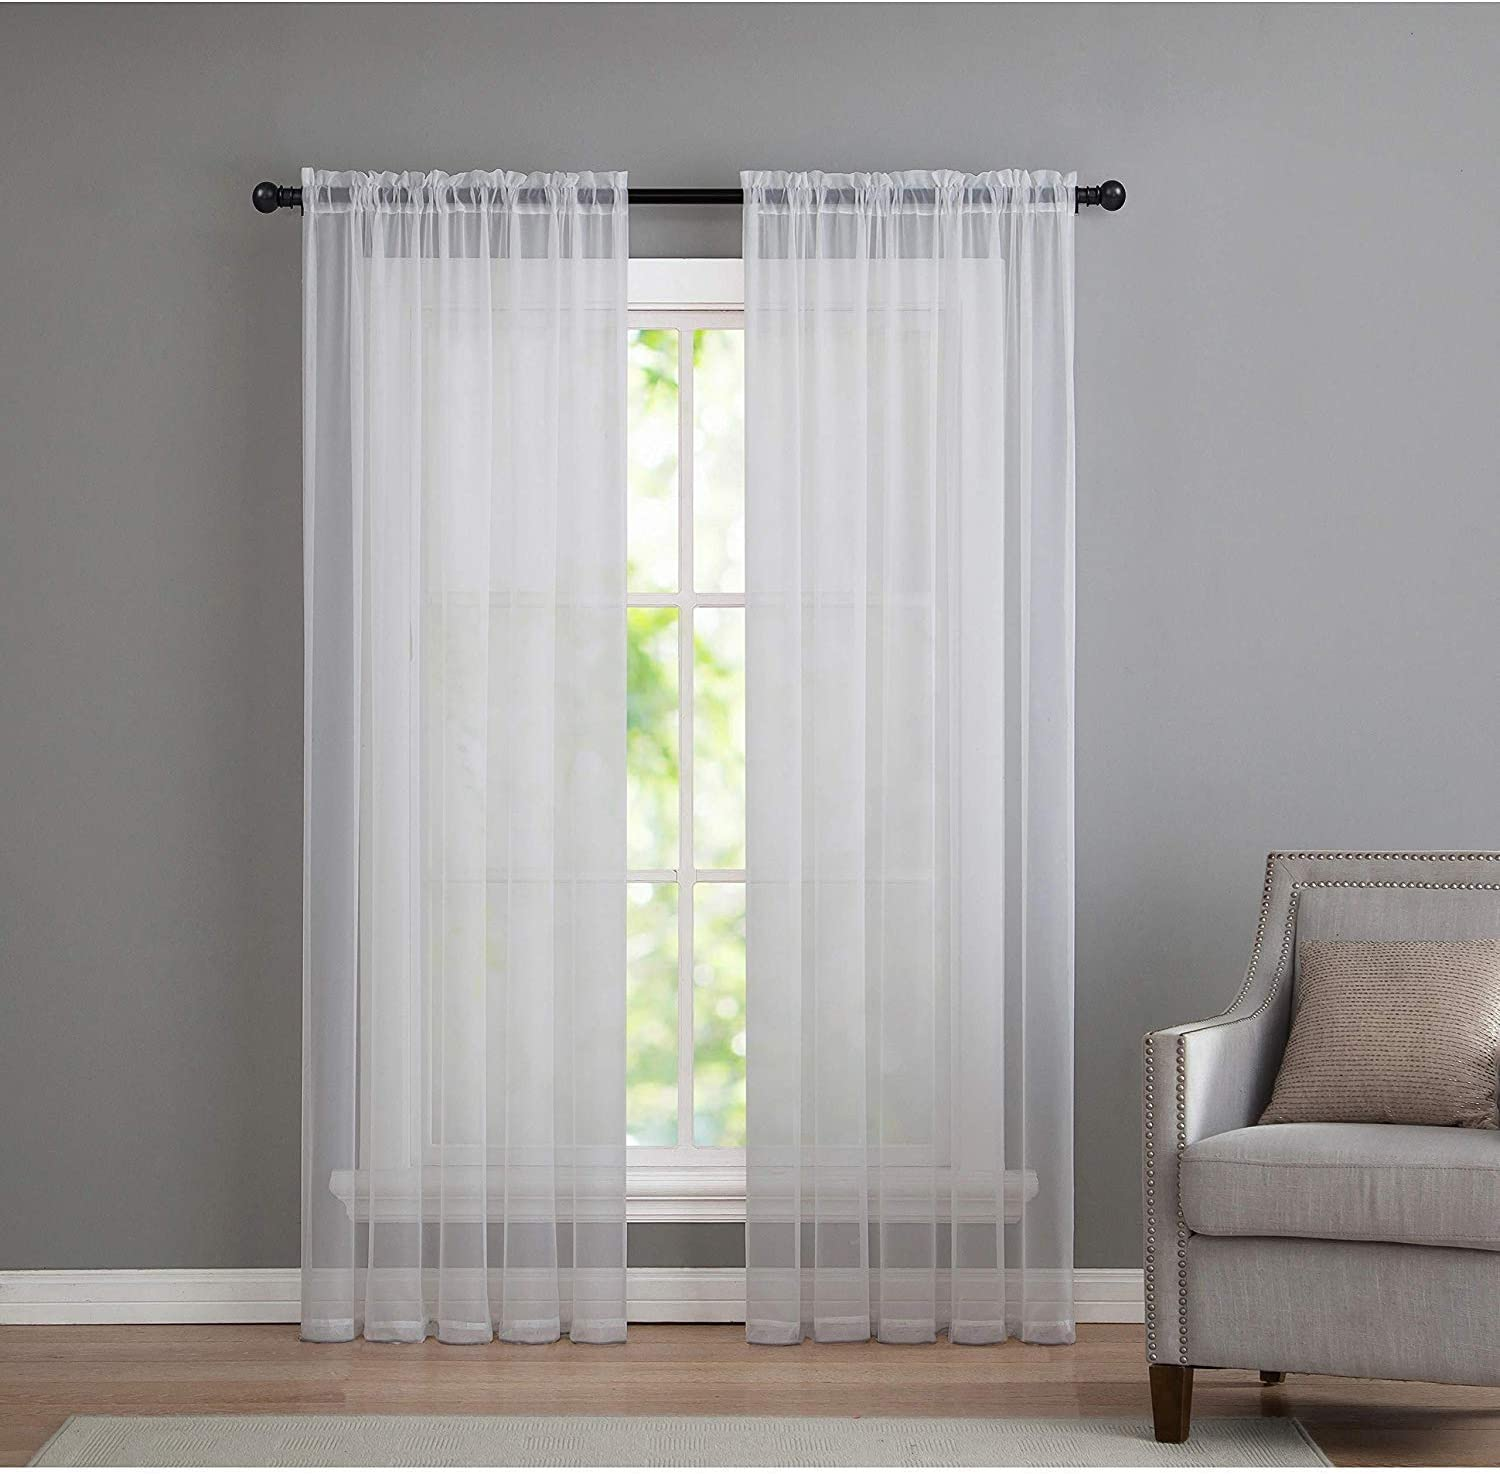 GoodGram 2 Pack: Basic Rod Pocket Sheer Voile Window Curtain Panels - Assorted Colors & Sizes (White, 63 in. Long Pair)